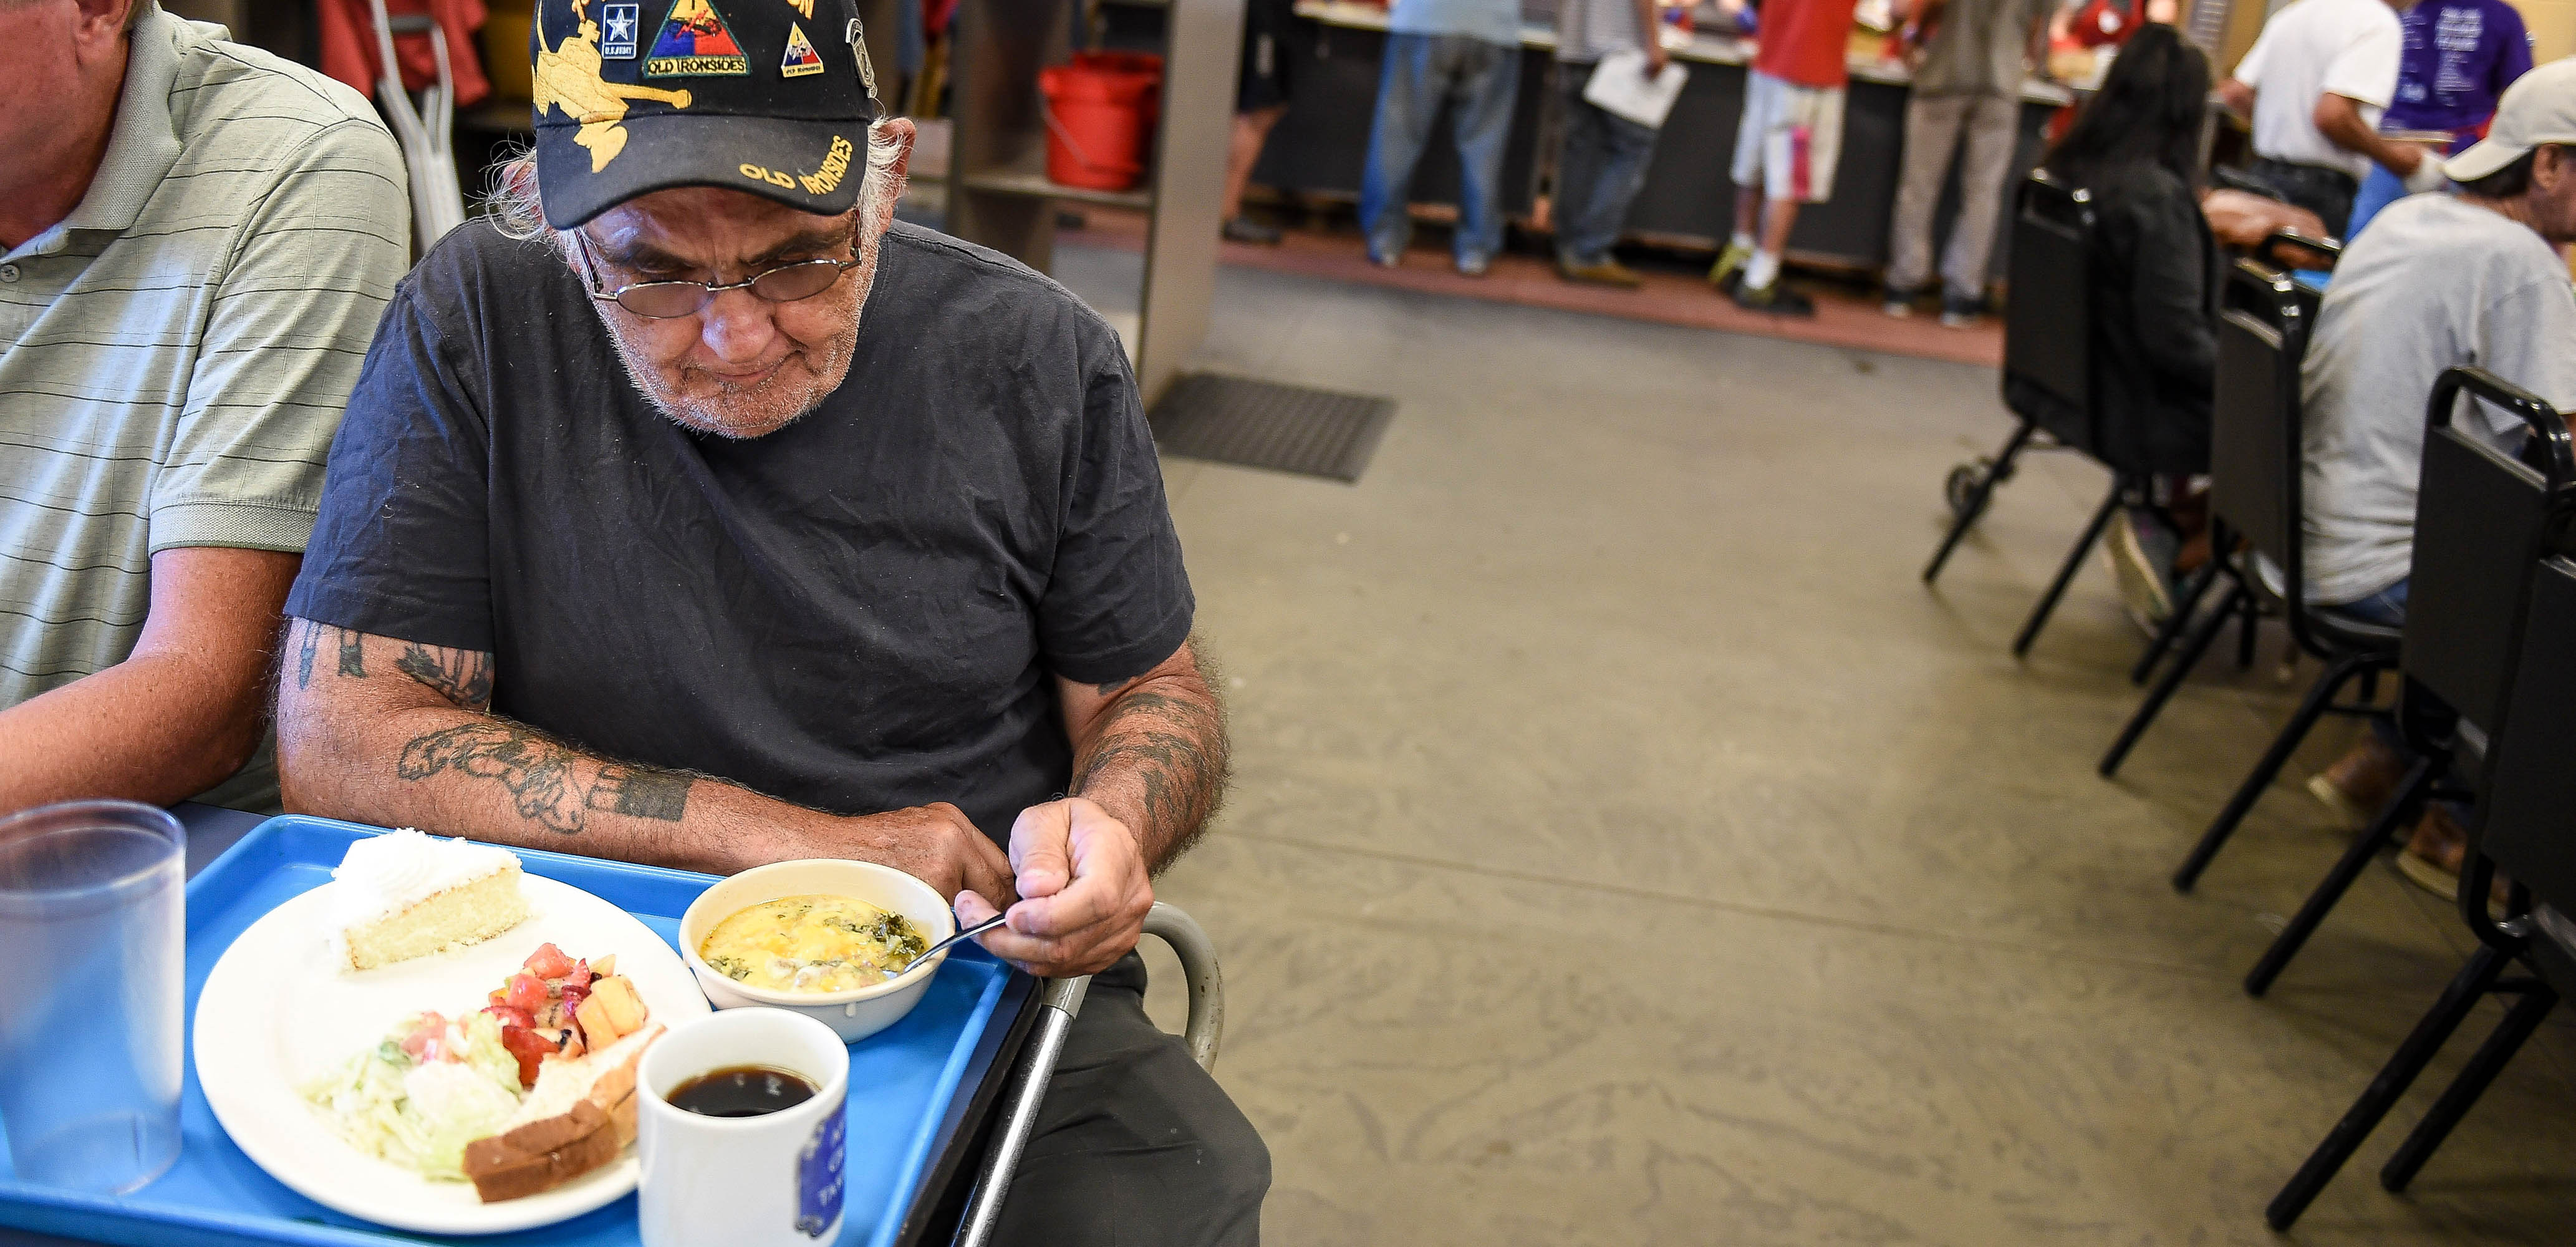 Man eating food at Marian House Soup Kitchen